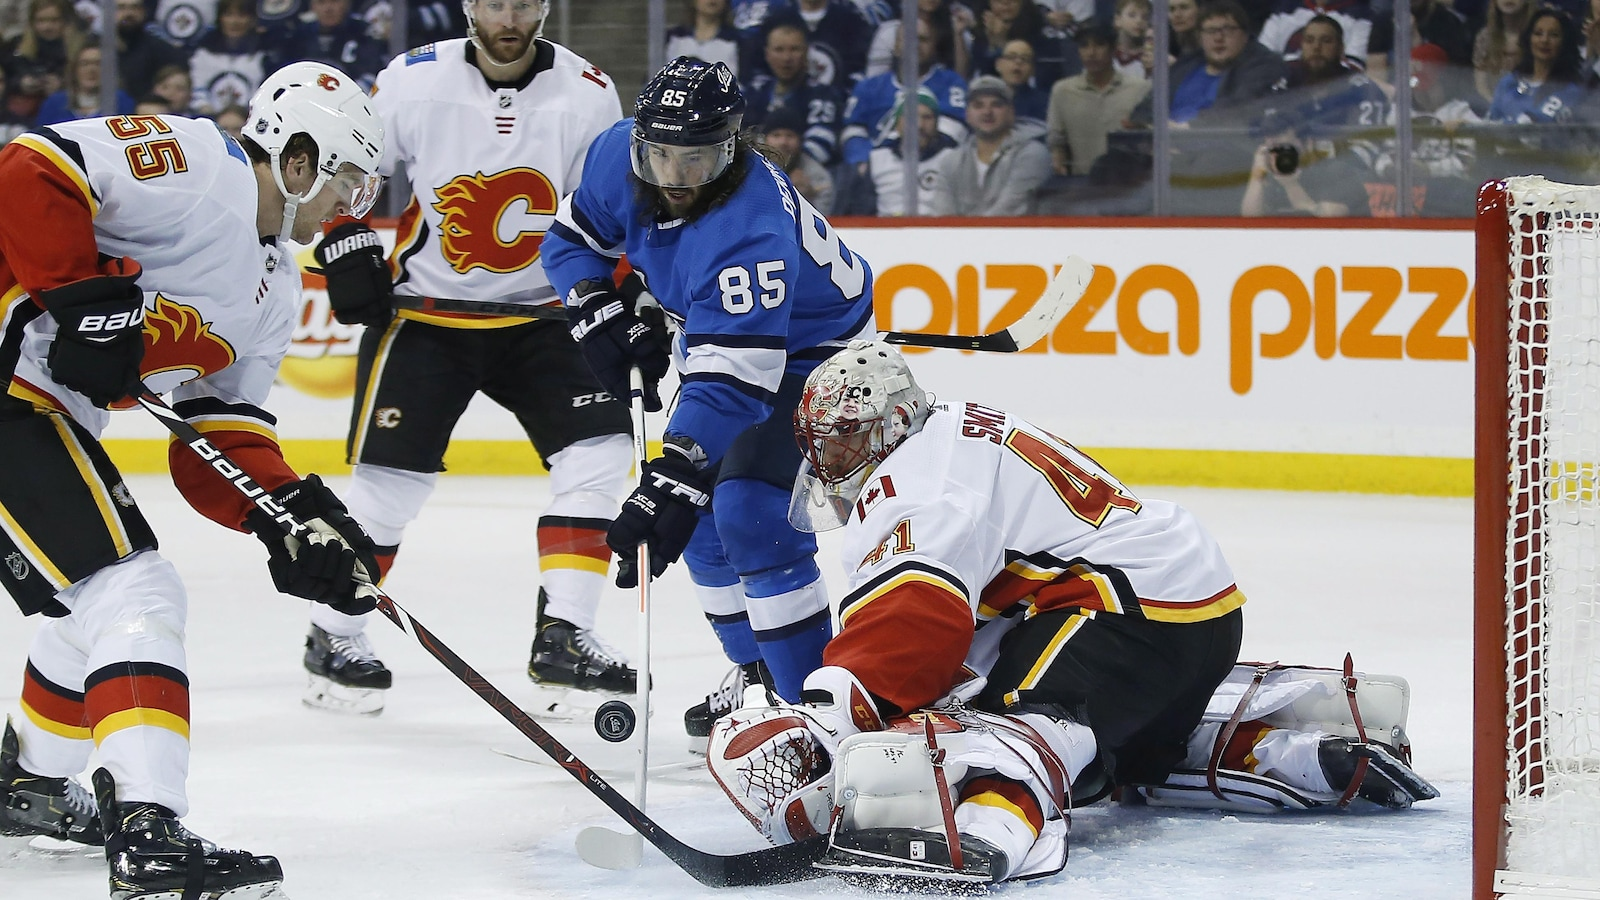 Mathieu Perreault (85) des Jets de Winnipeg, marque un but face au gardien Mike Smith (41) des Flames de Calgary.